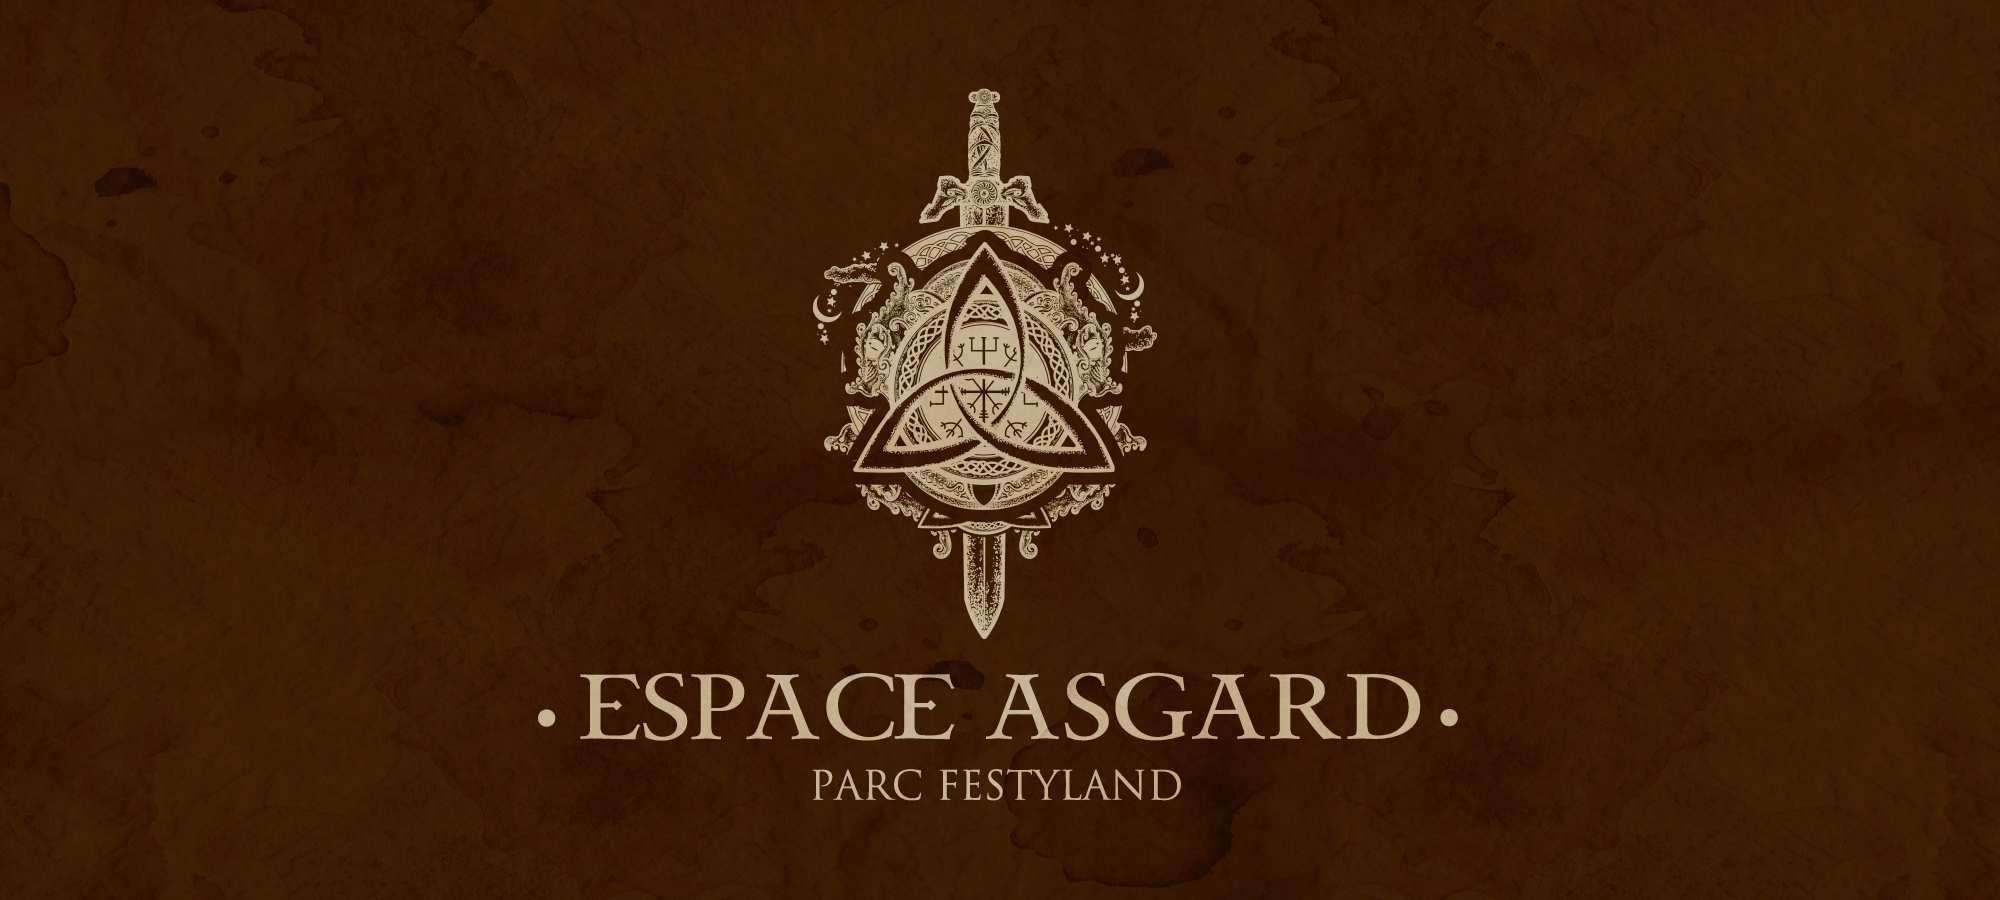 FESTYLAND_ASGARD ©Trois Petits Points Communication